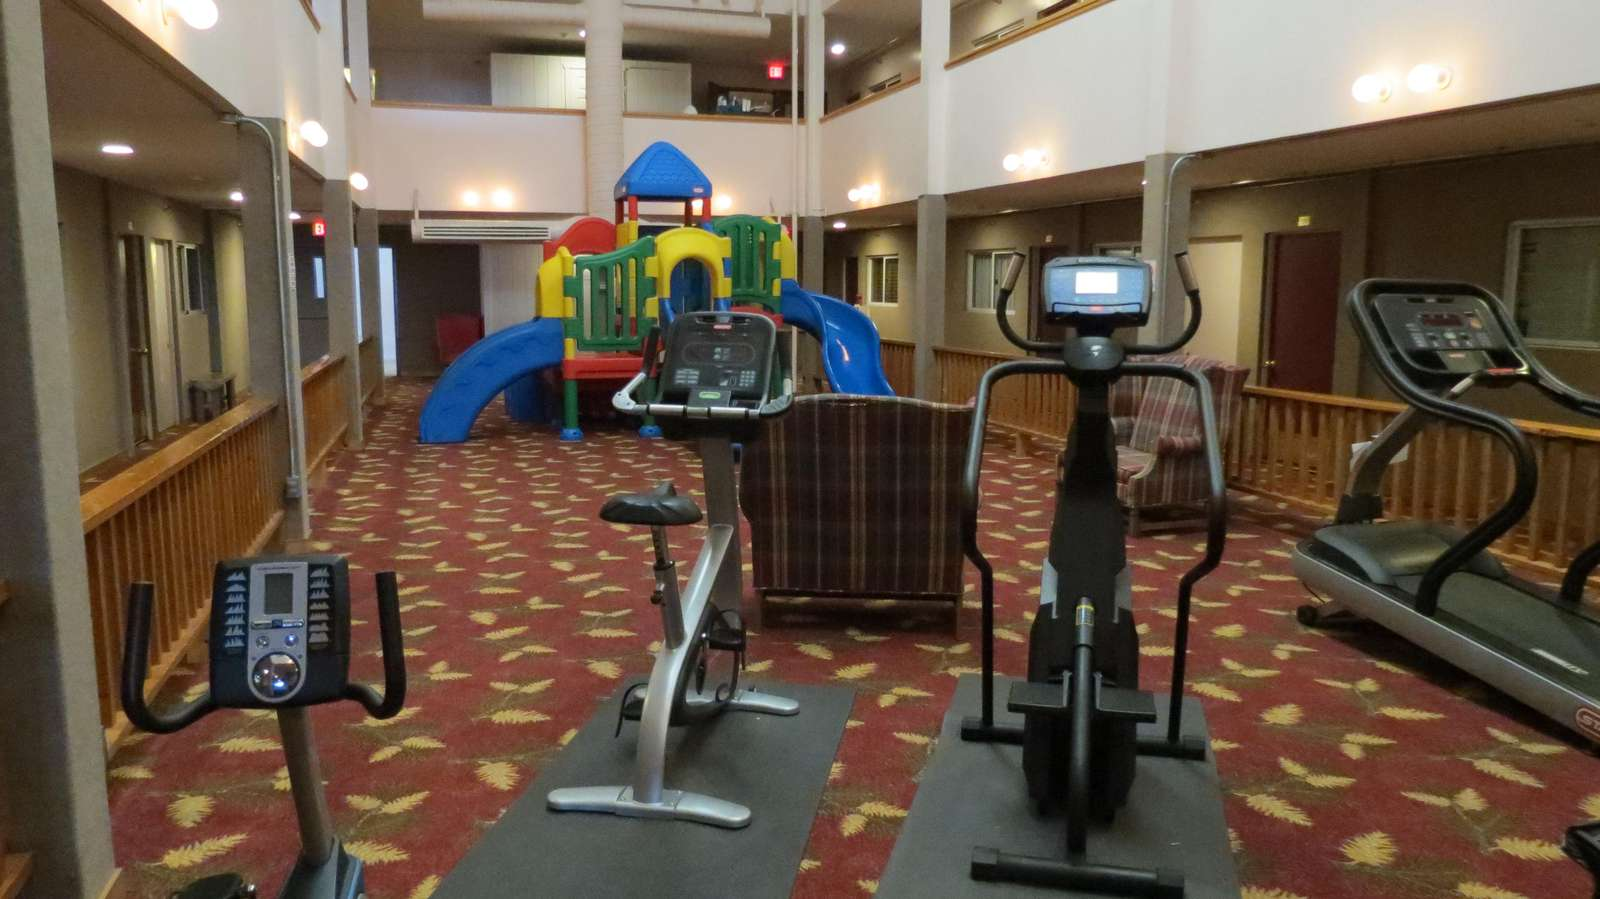 Gym/Play Area